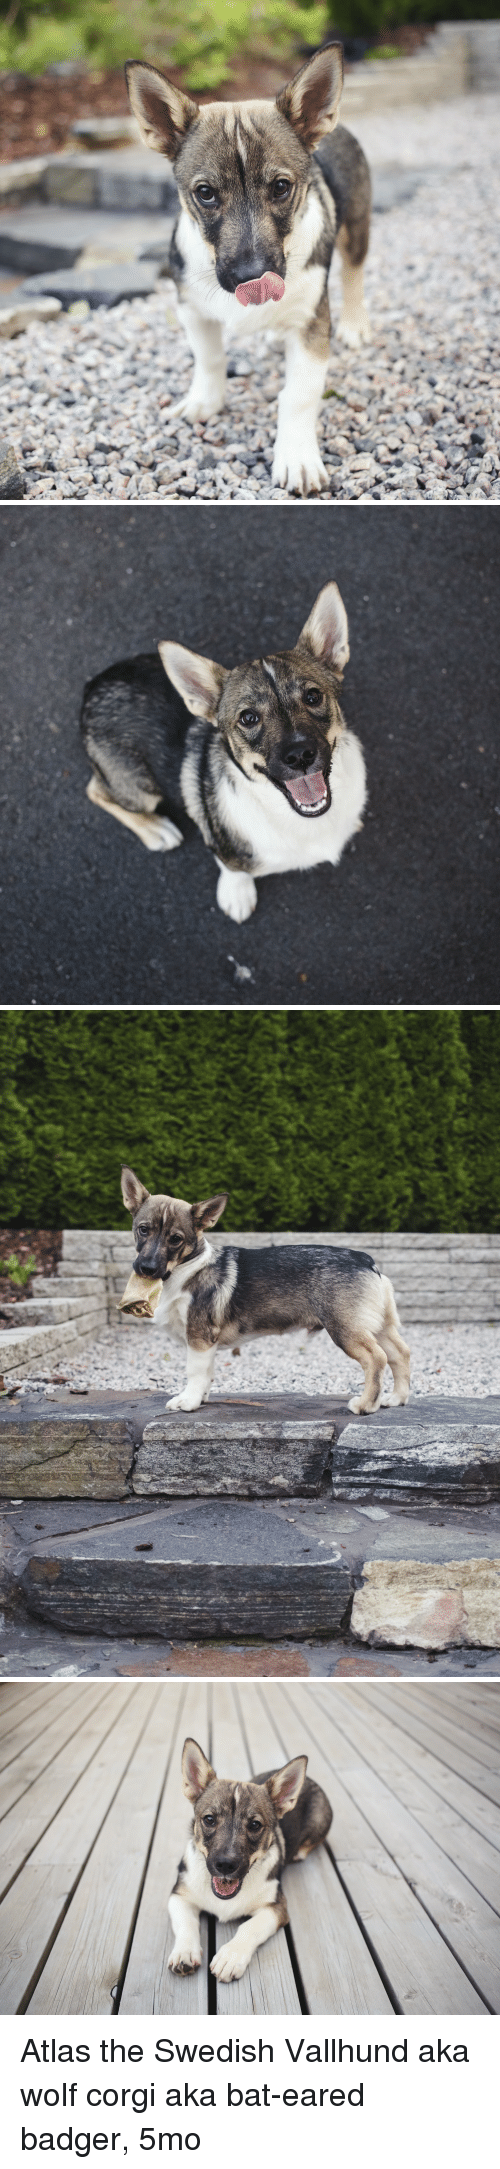 Corgi, Wolf, and Swedish: Atlas the Swedish Vallhund aka wolf corgi aka bat-eared badger, 5mo